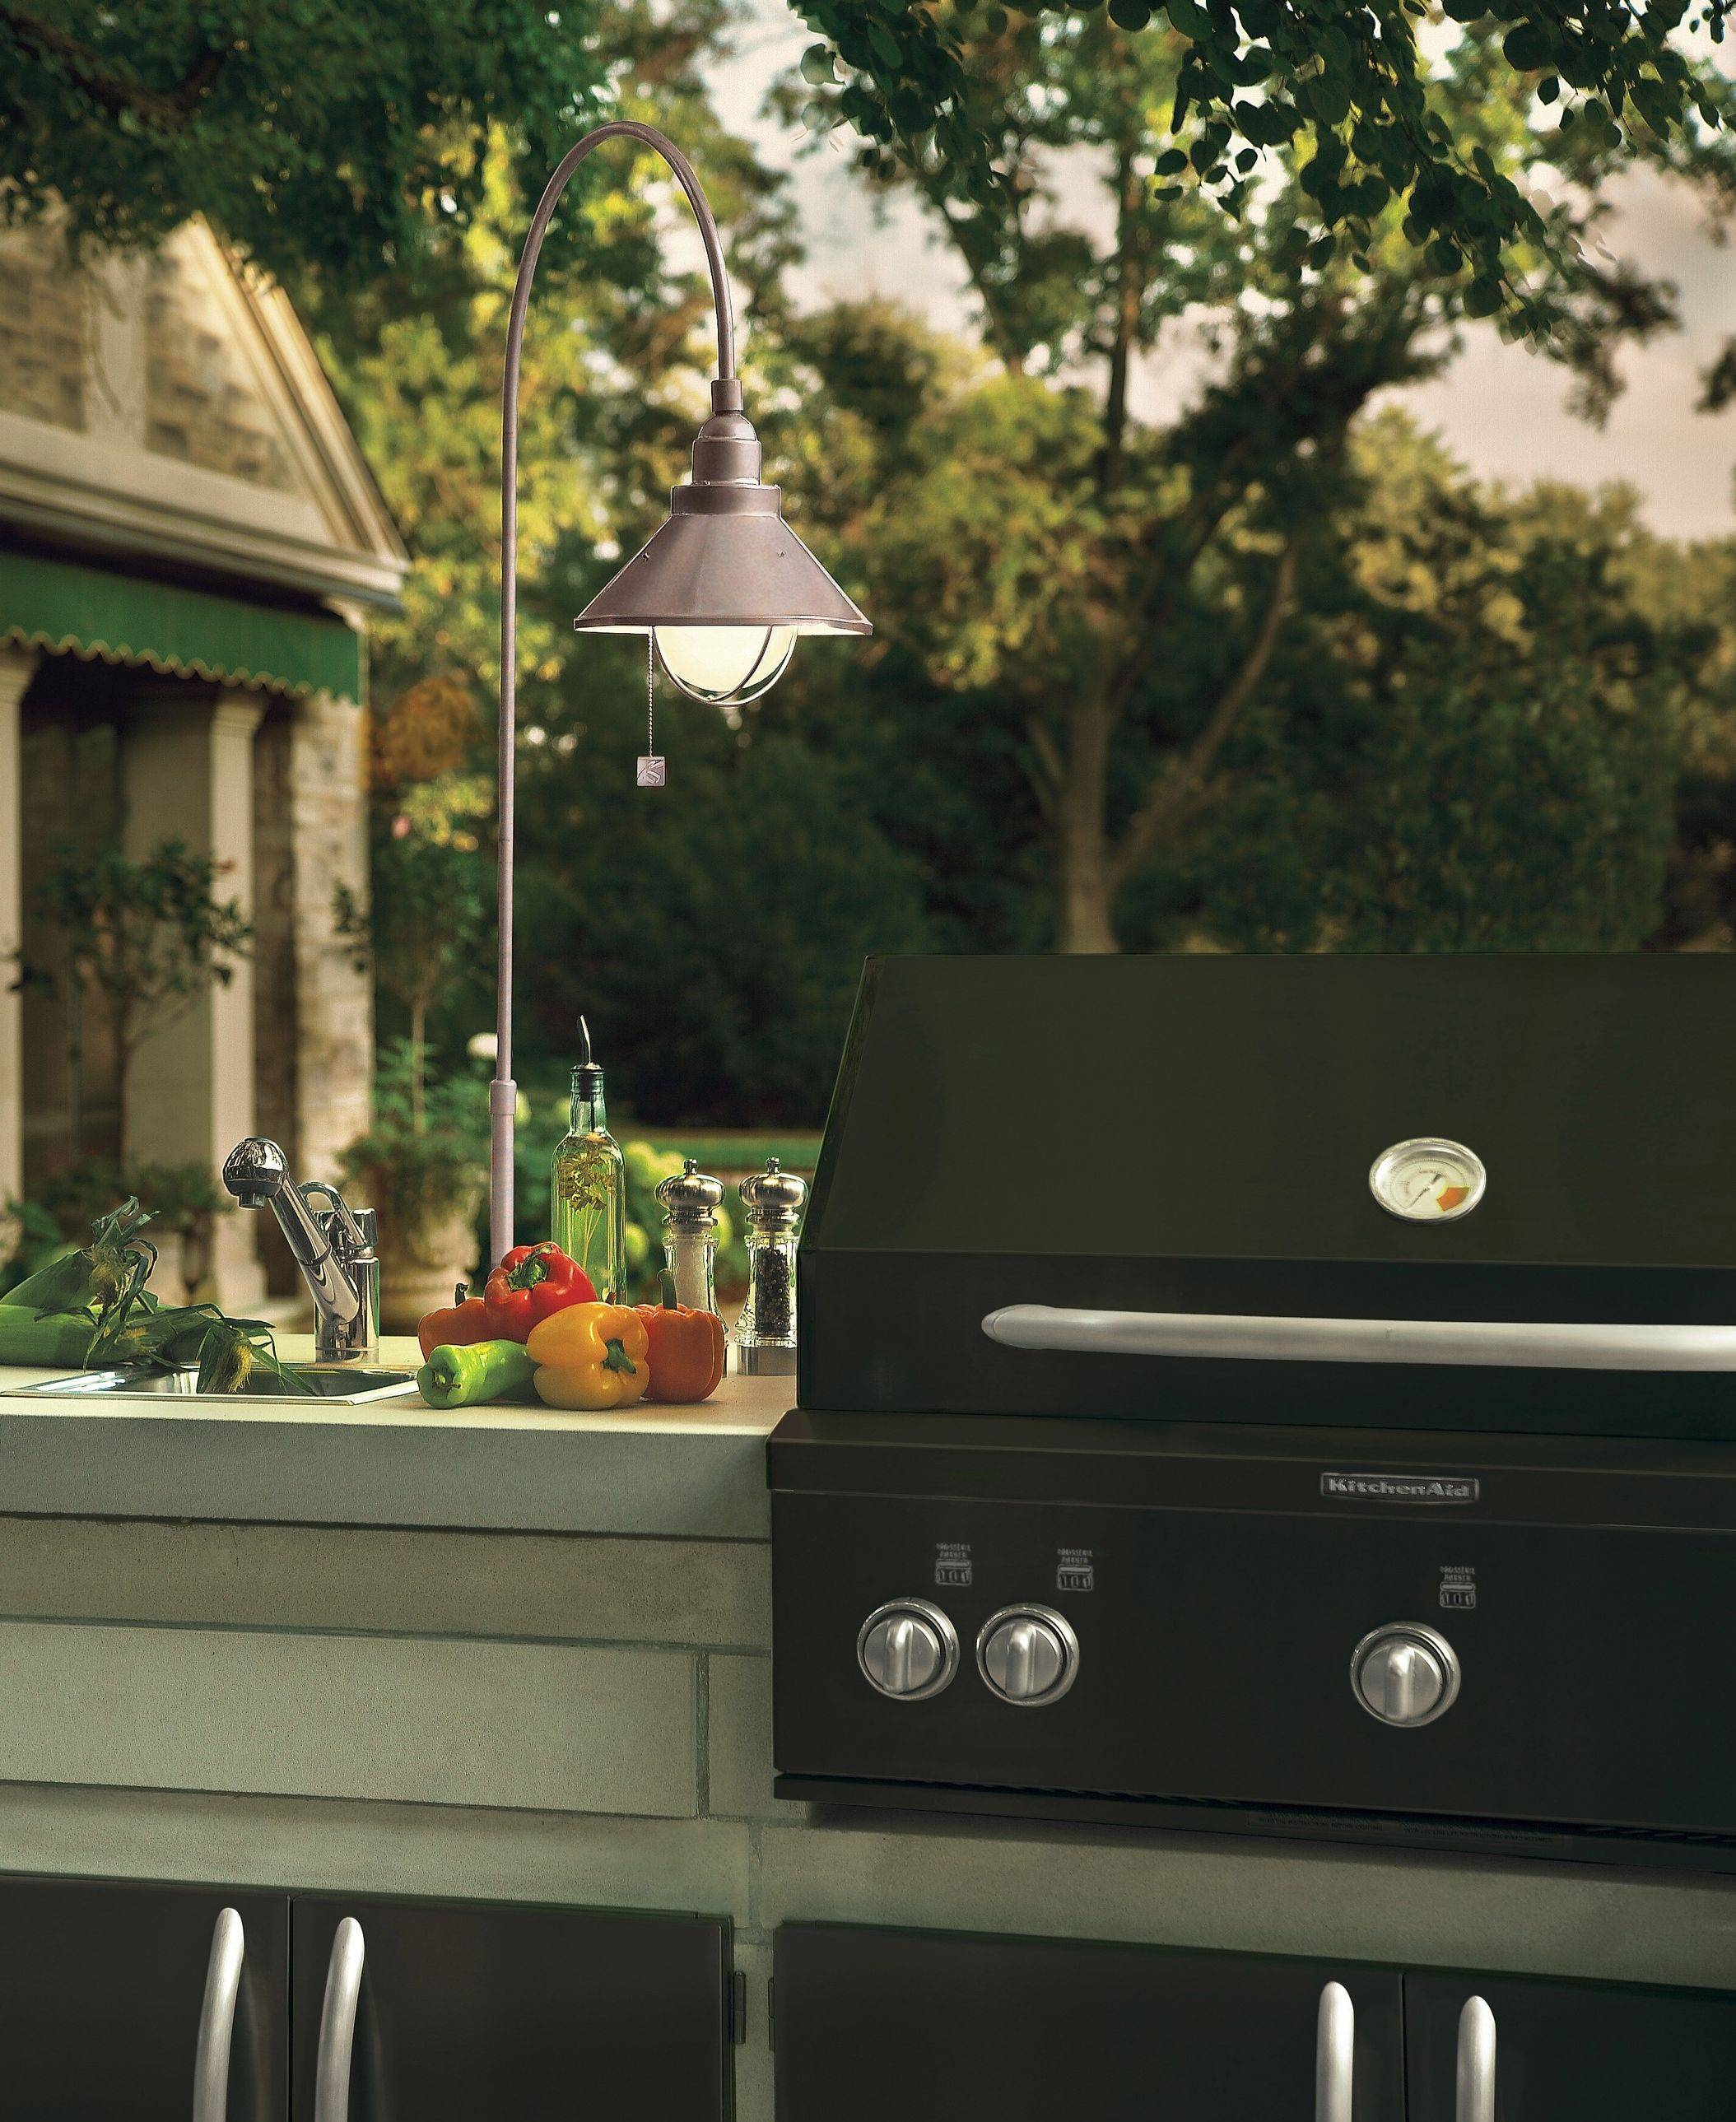 Specialty lighting, like this grill light at left, can ease the job of cooking in the dark. Other options are lights that illuminate the insides of drawers in outdoor kitchens and provide backlight for countertops.